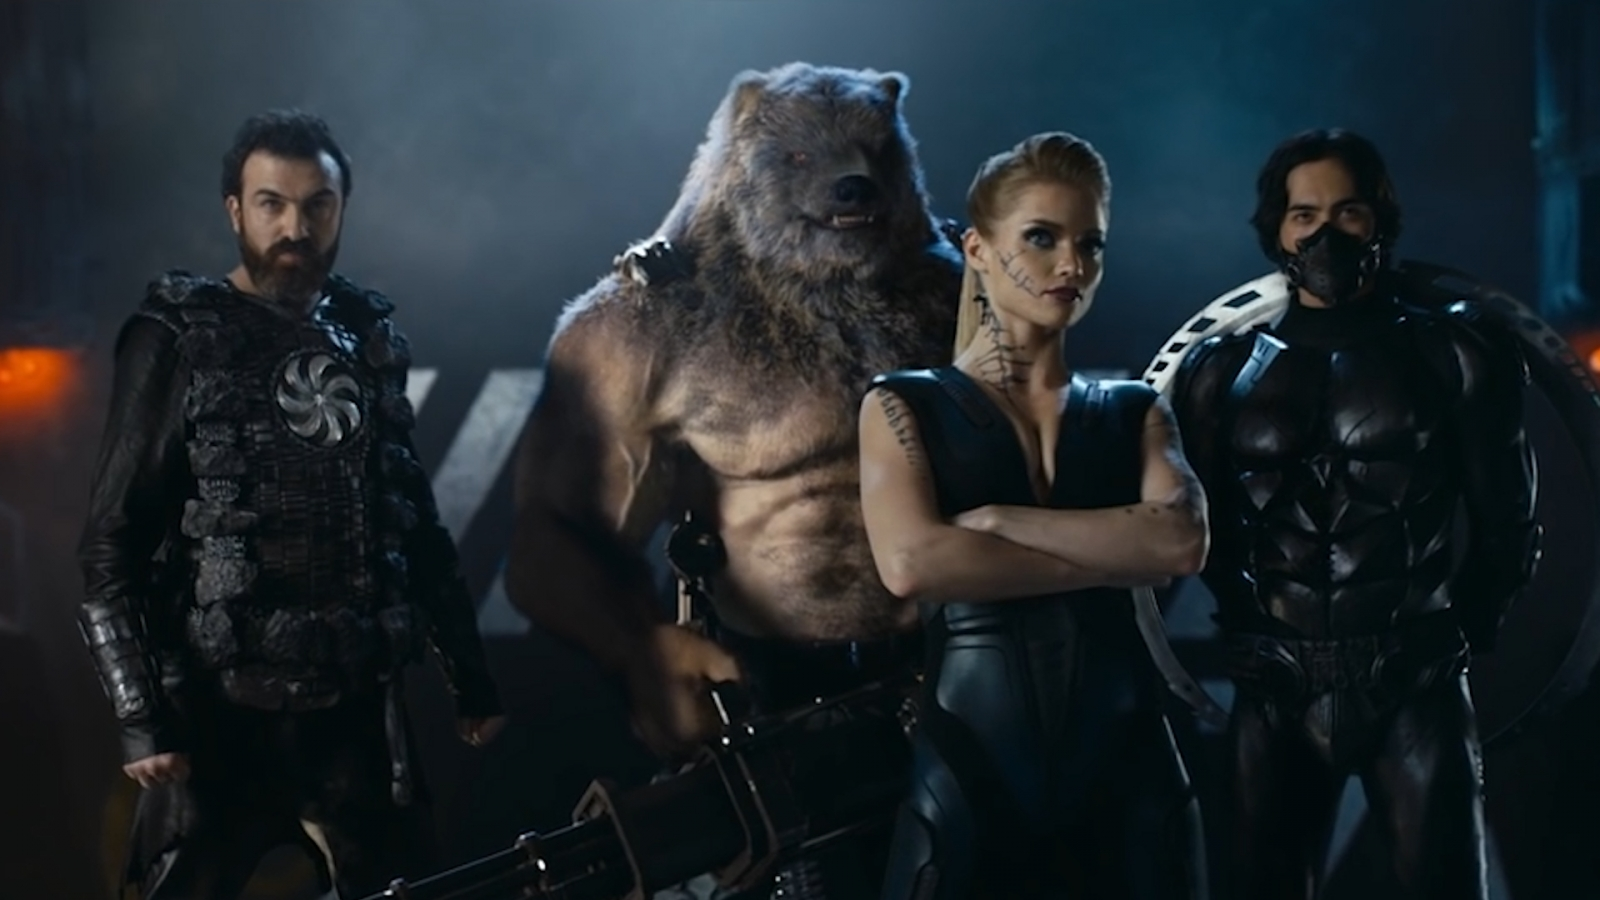 Russian superhero film mirrors avengers